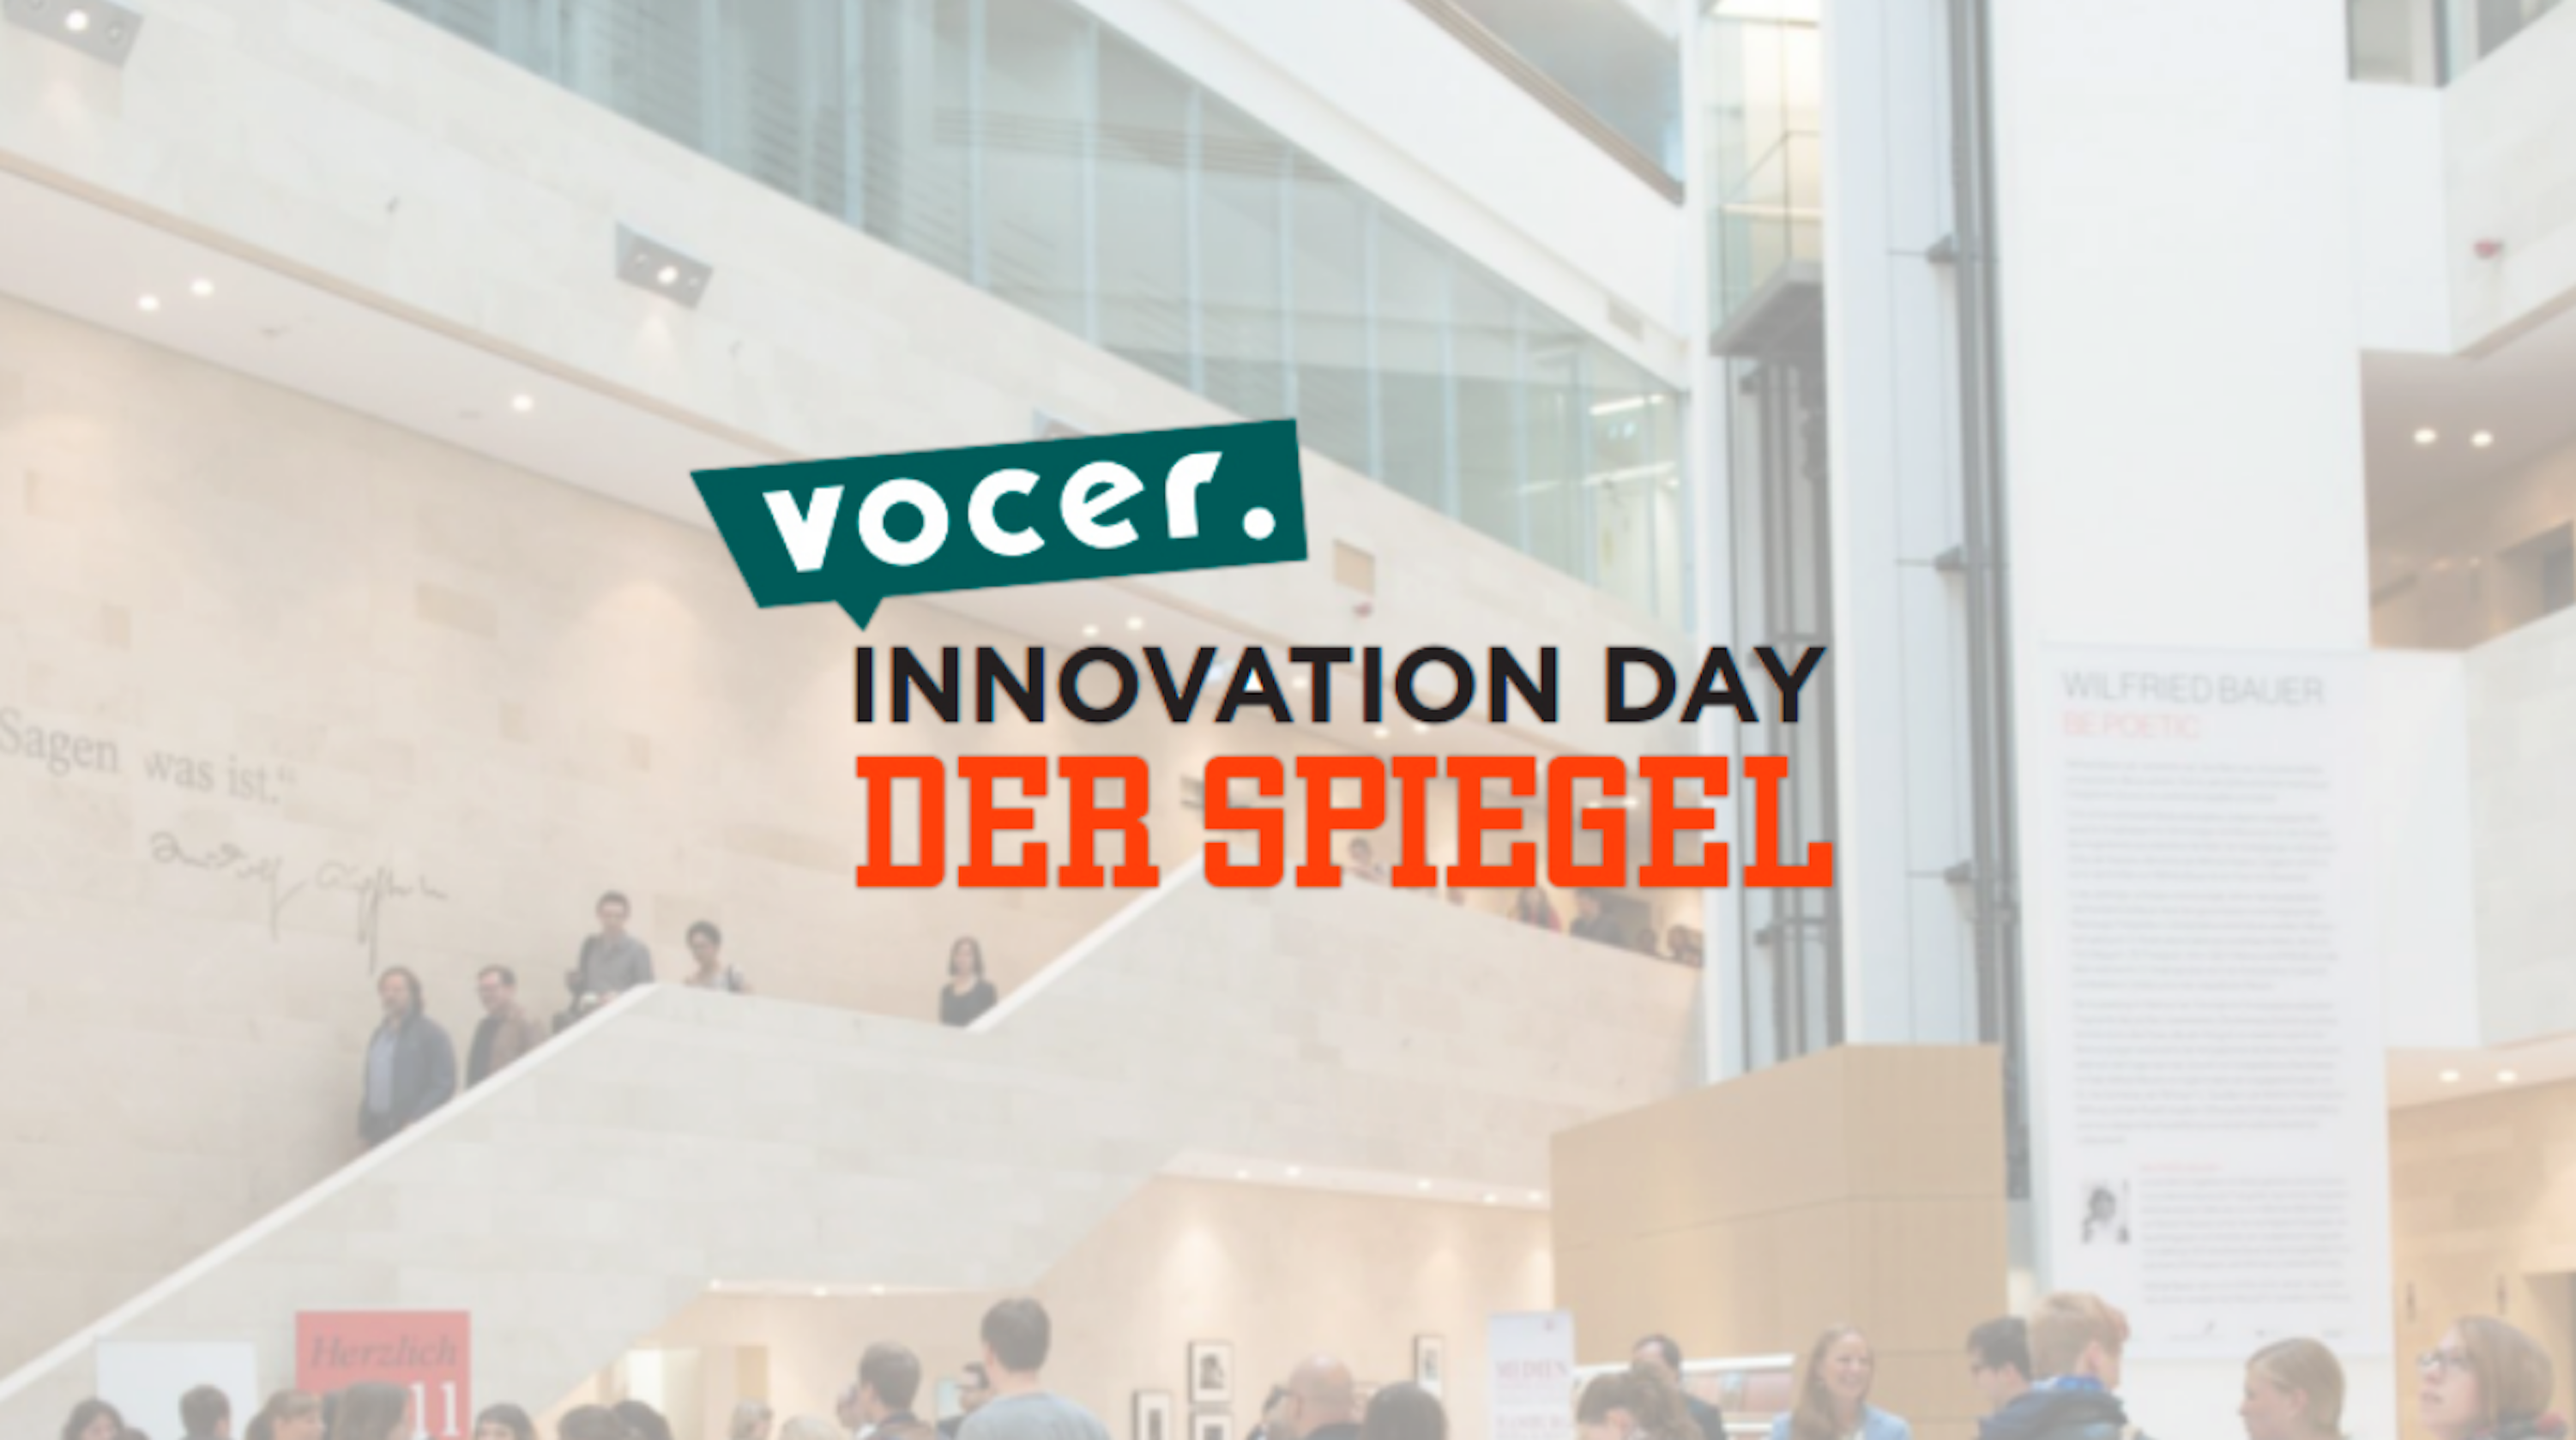 VOCER Innovation Day